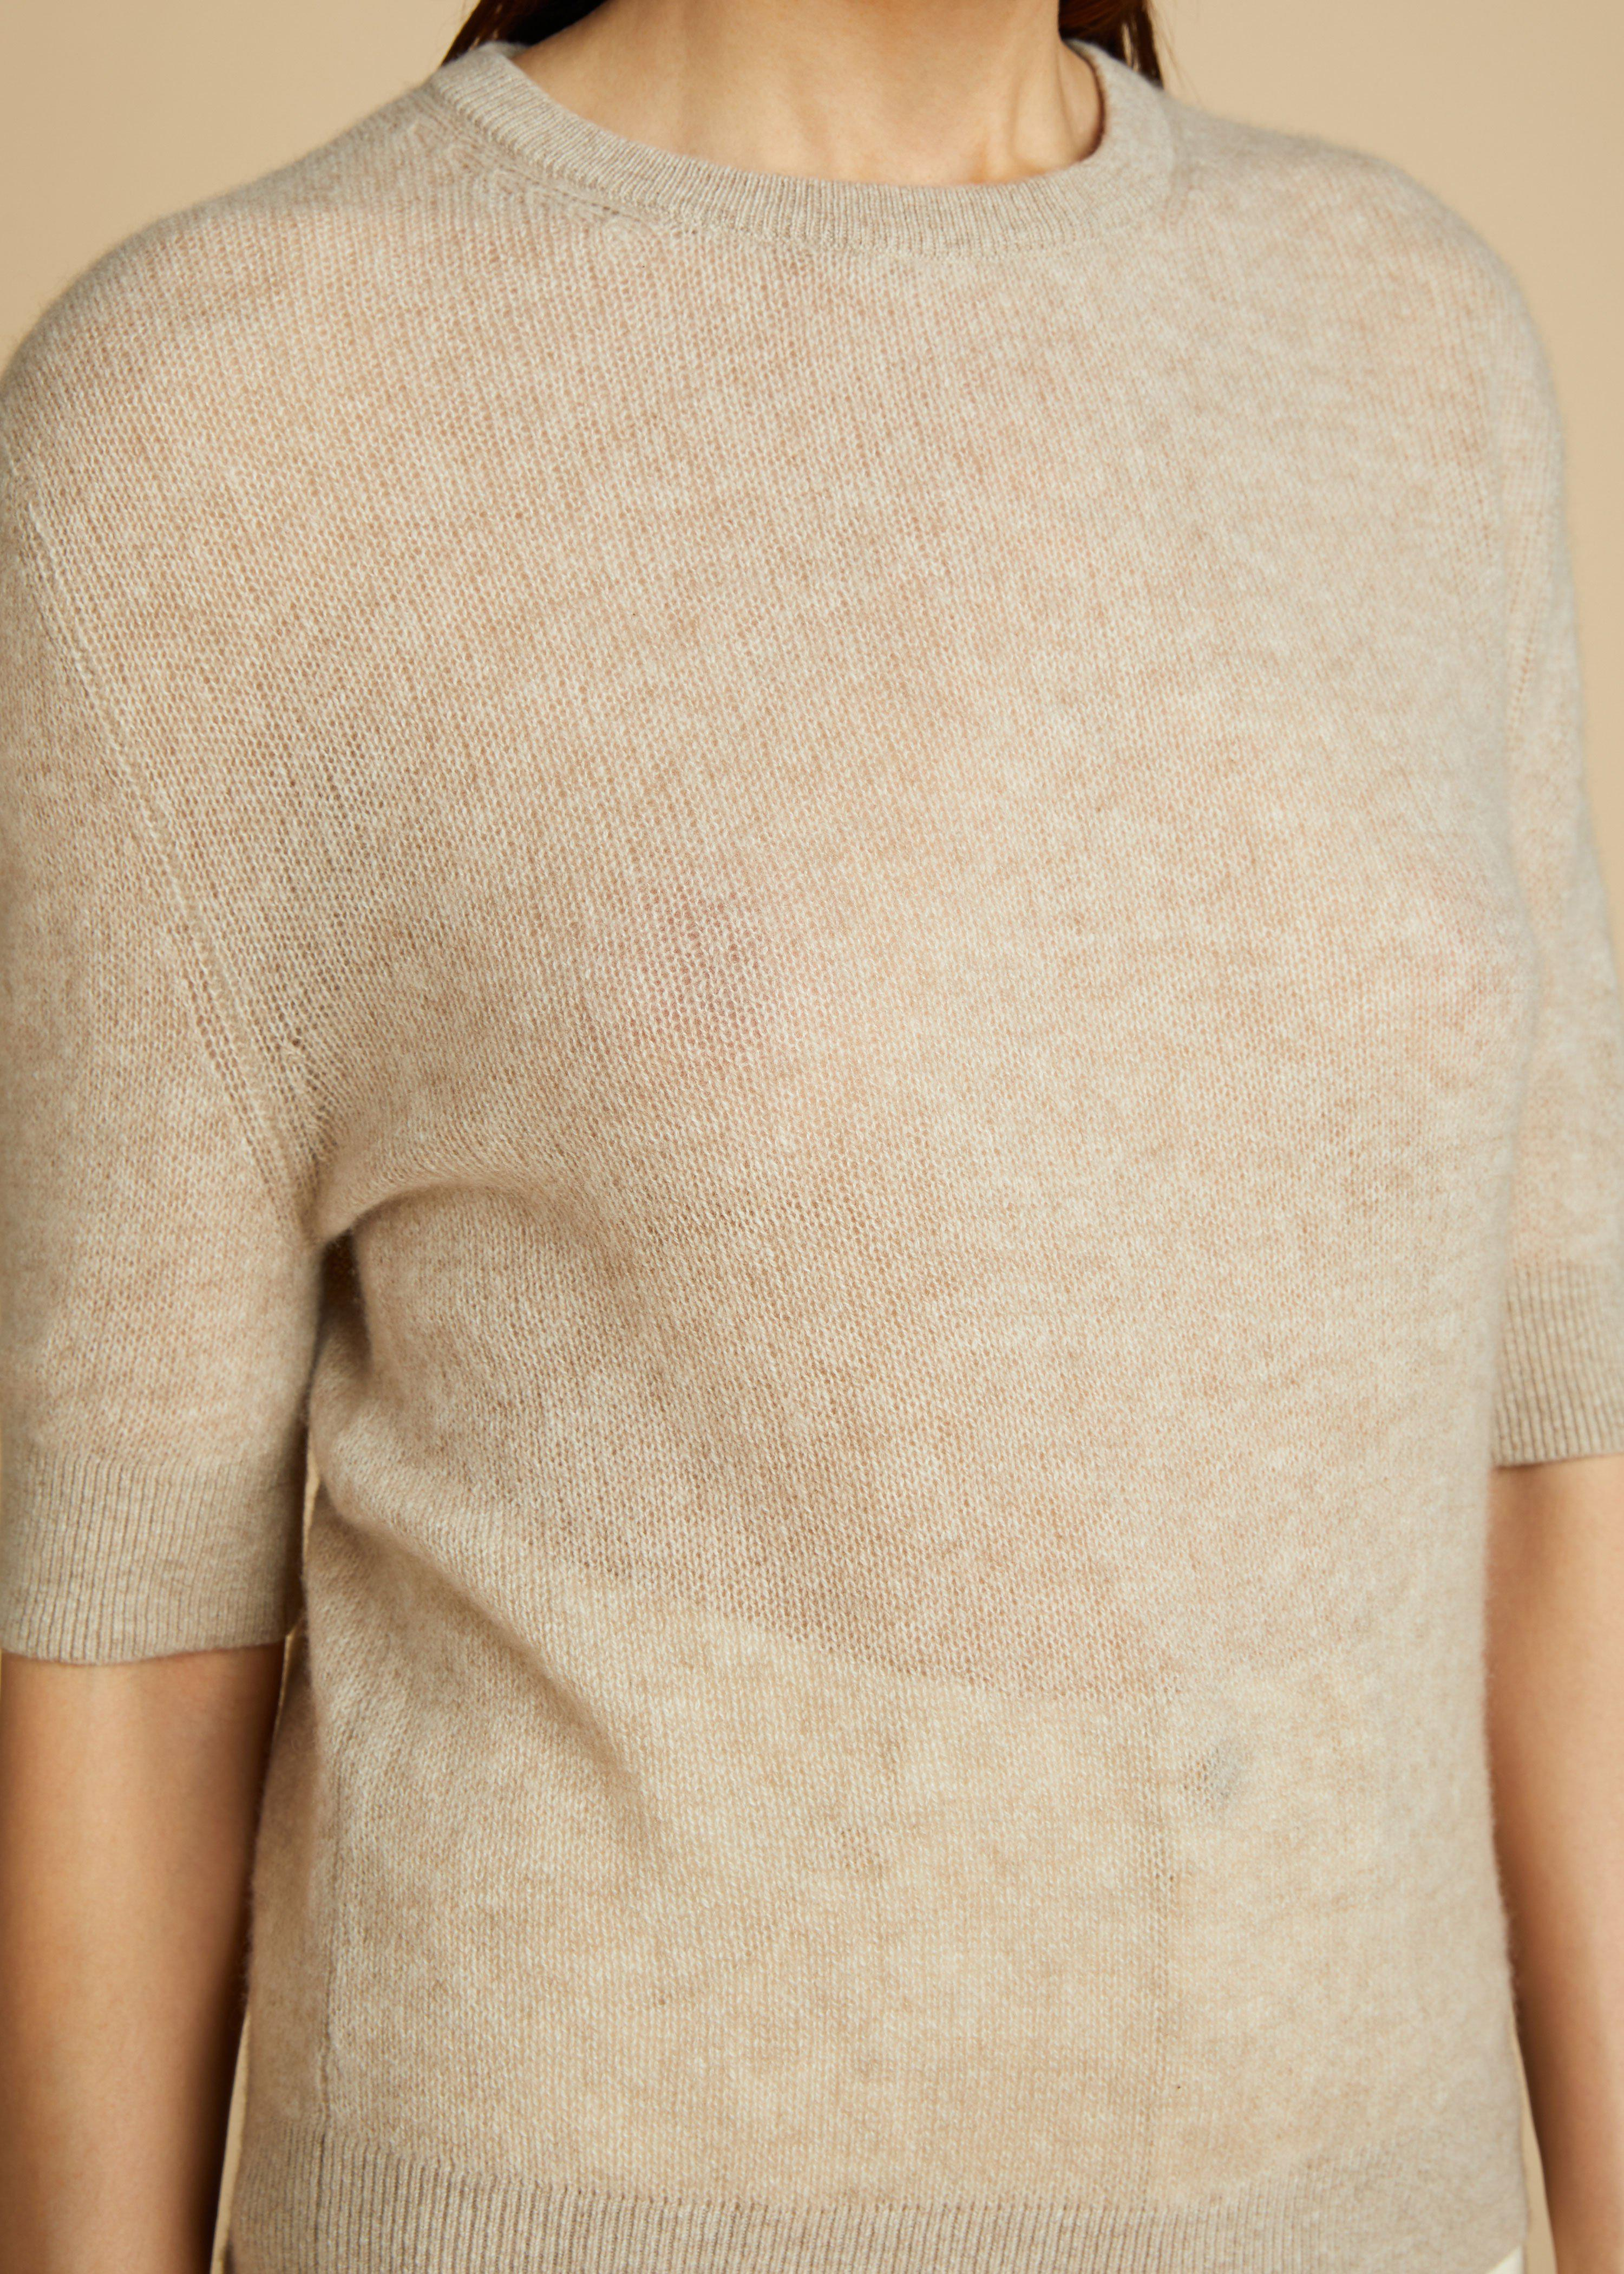 The Dianna Sweater in Powder 4